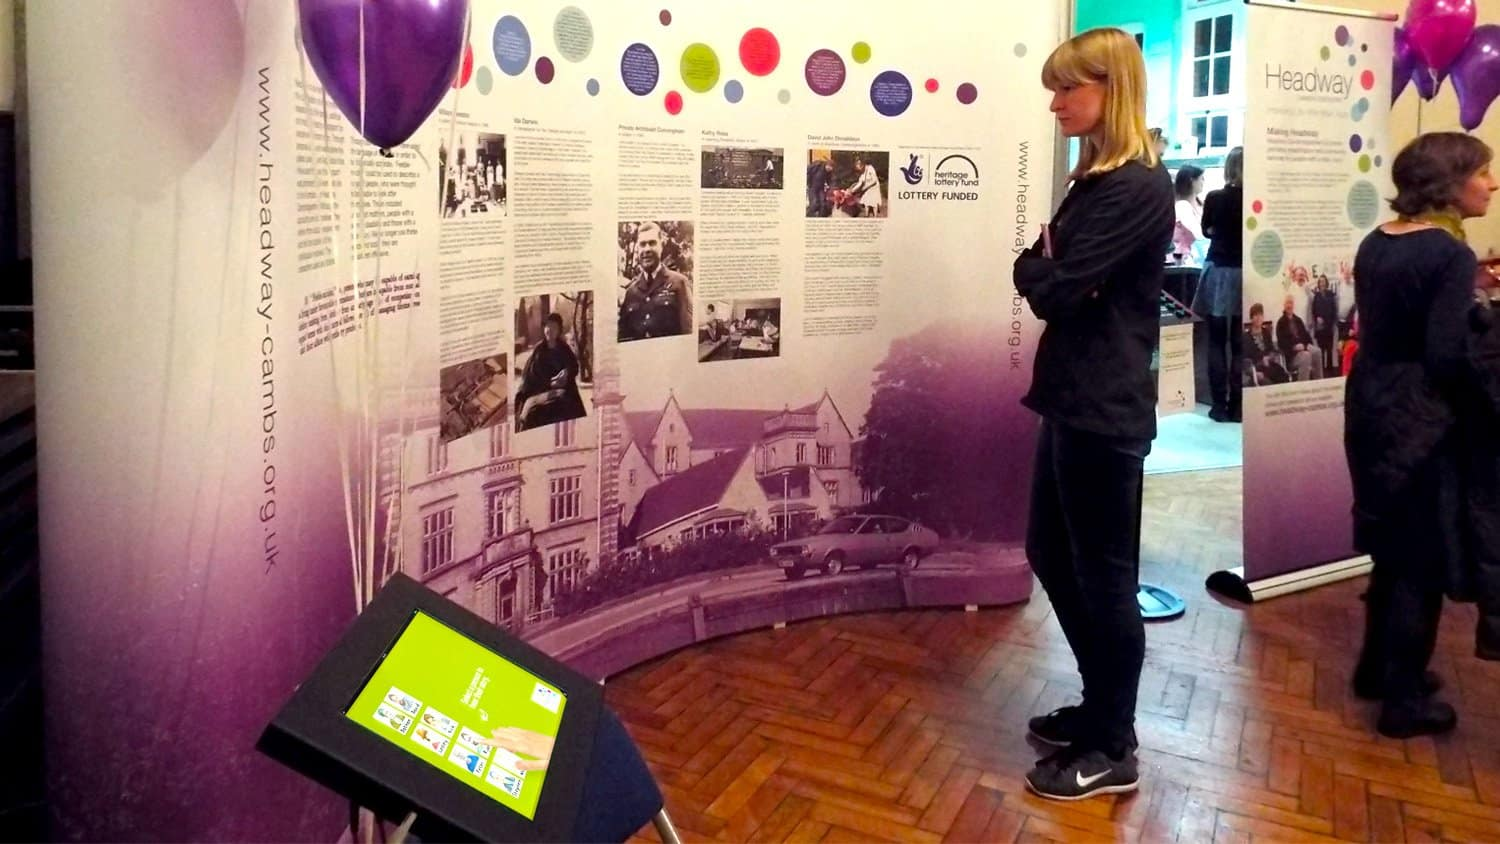 Headway Cambridgeshire making Headway Event with iPad Kiosk & Feedback Counter 2